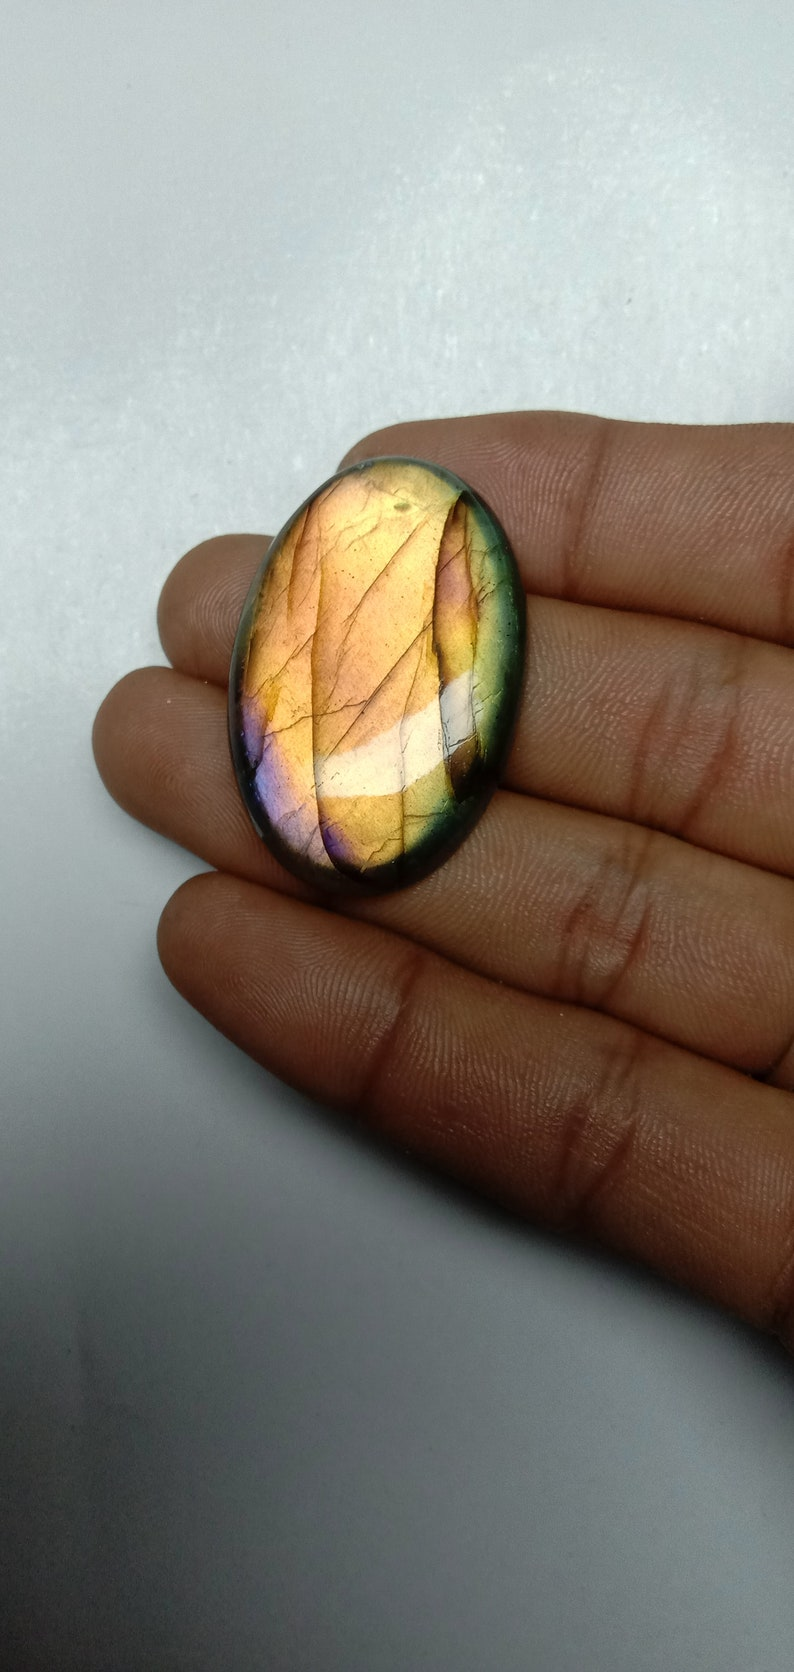 62.70 cts good quality natural Labradorite cabochons loose gemstone shape oval size 38x25x7mm free shipping